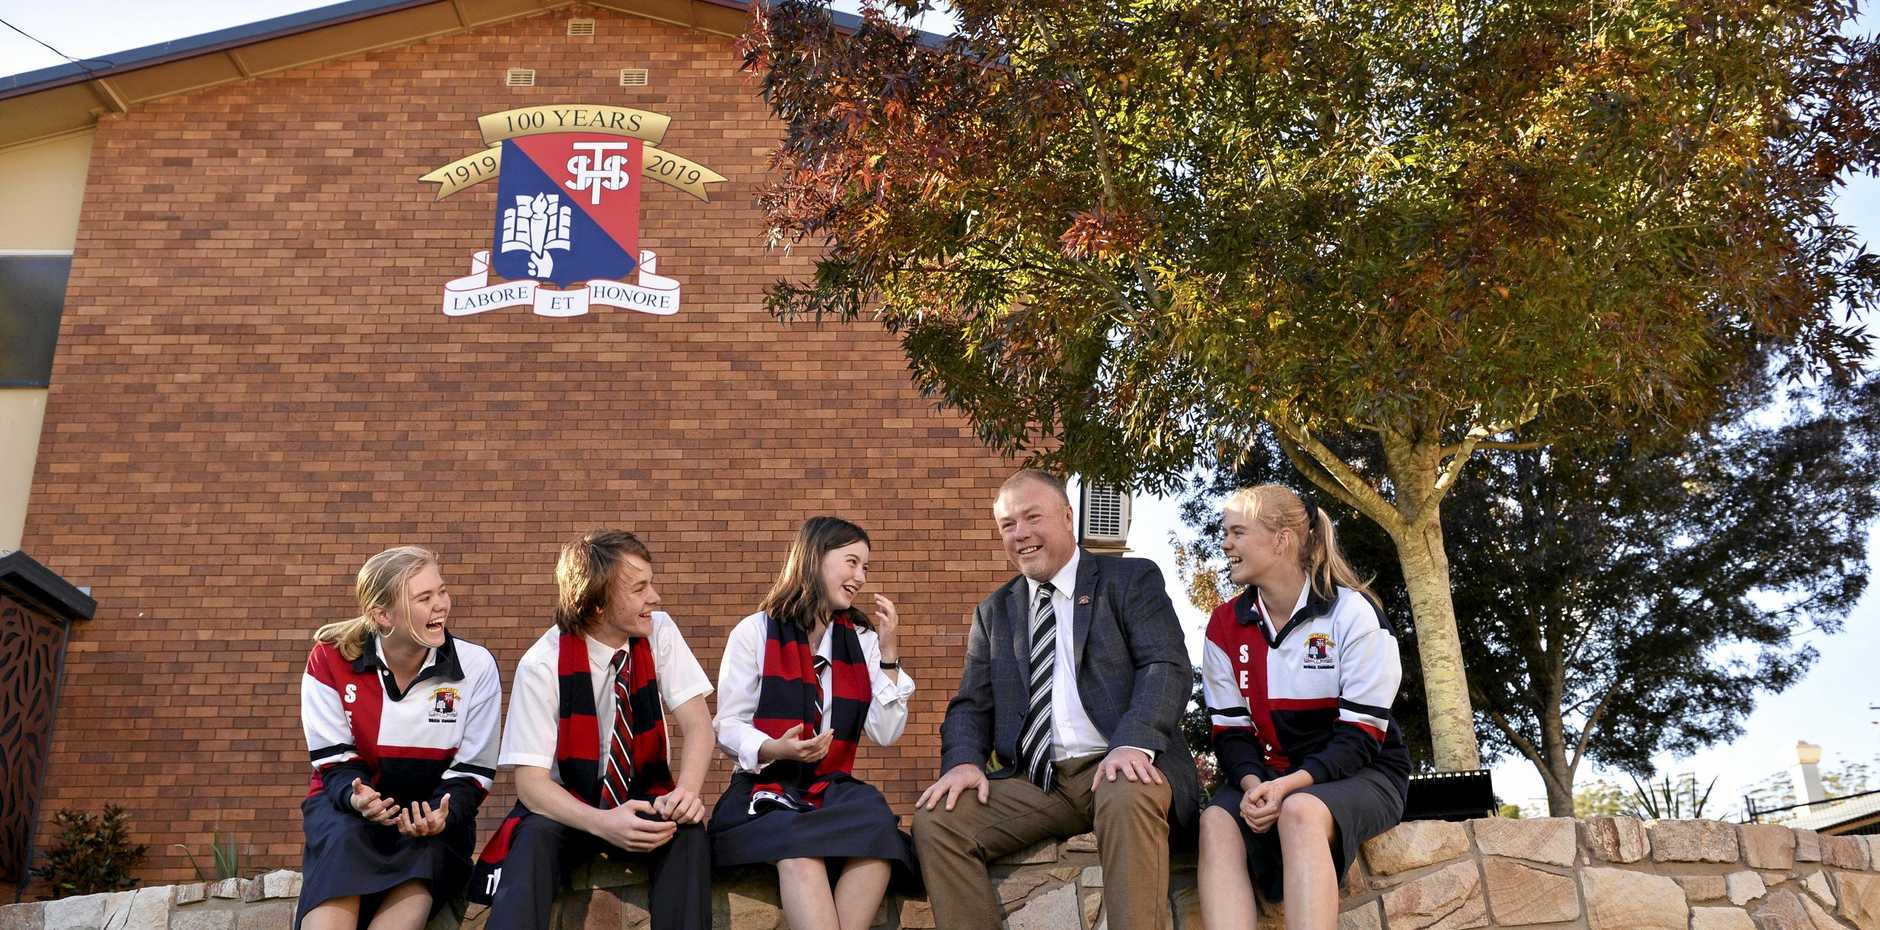 100 YEARS OF EXCELLENCE: Toowoomba State High School students (from left) Nikkia Campbell, Eliot Argus, Adelaide Cool and Jordann Campbell with principal Tony Kennedy in the new centenary courtyard as the school celebrates 100 years.